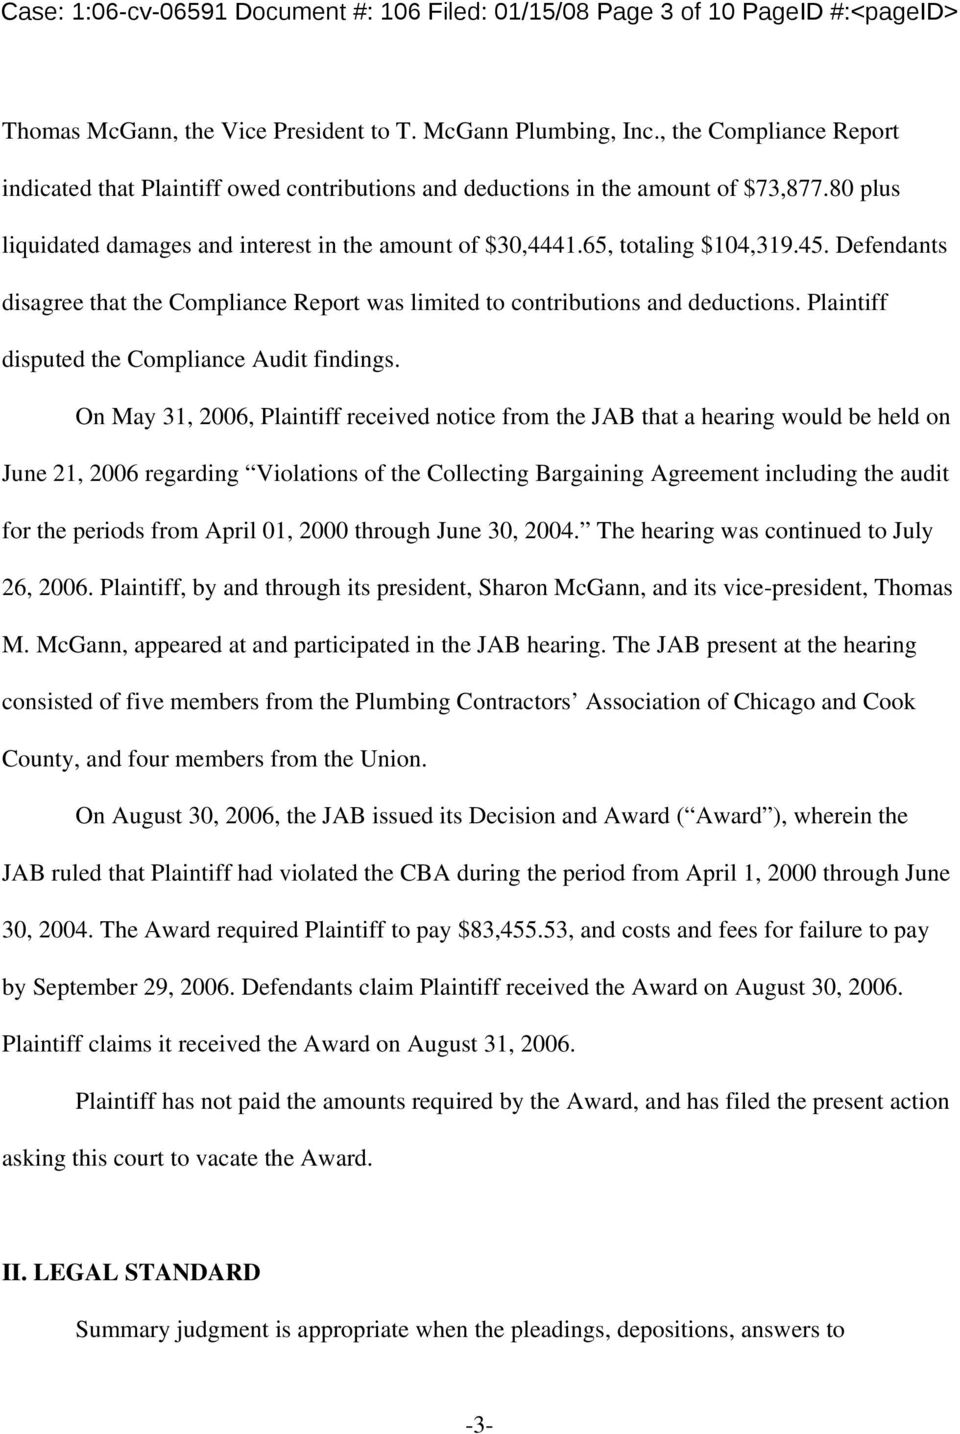 Defendants disagree that the Compliance Report was limited to contributions and deductions. Plaintiff disputed the Compliance Audit findings.